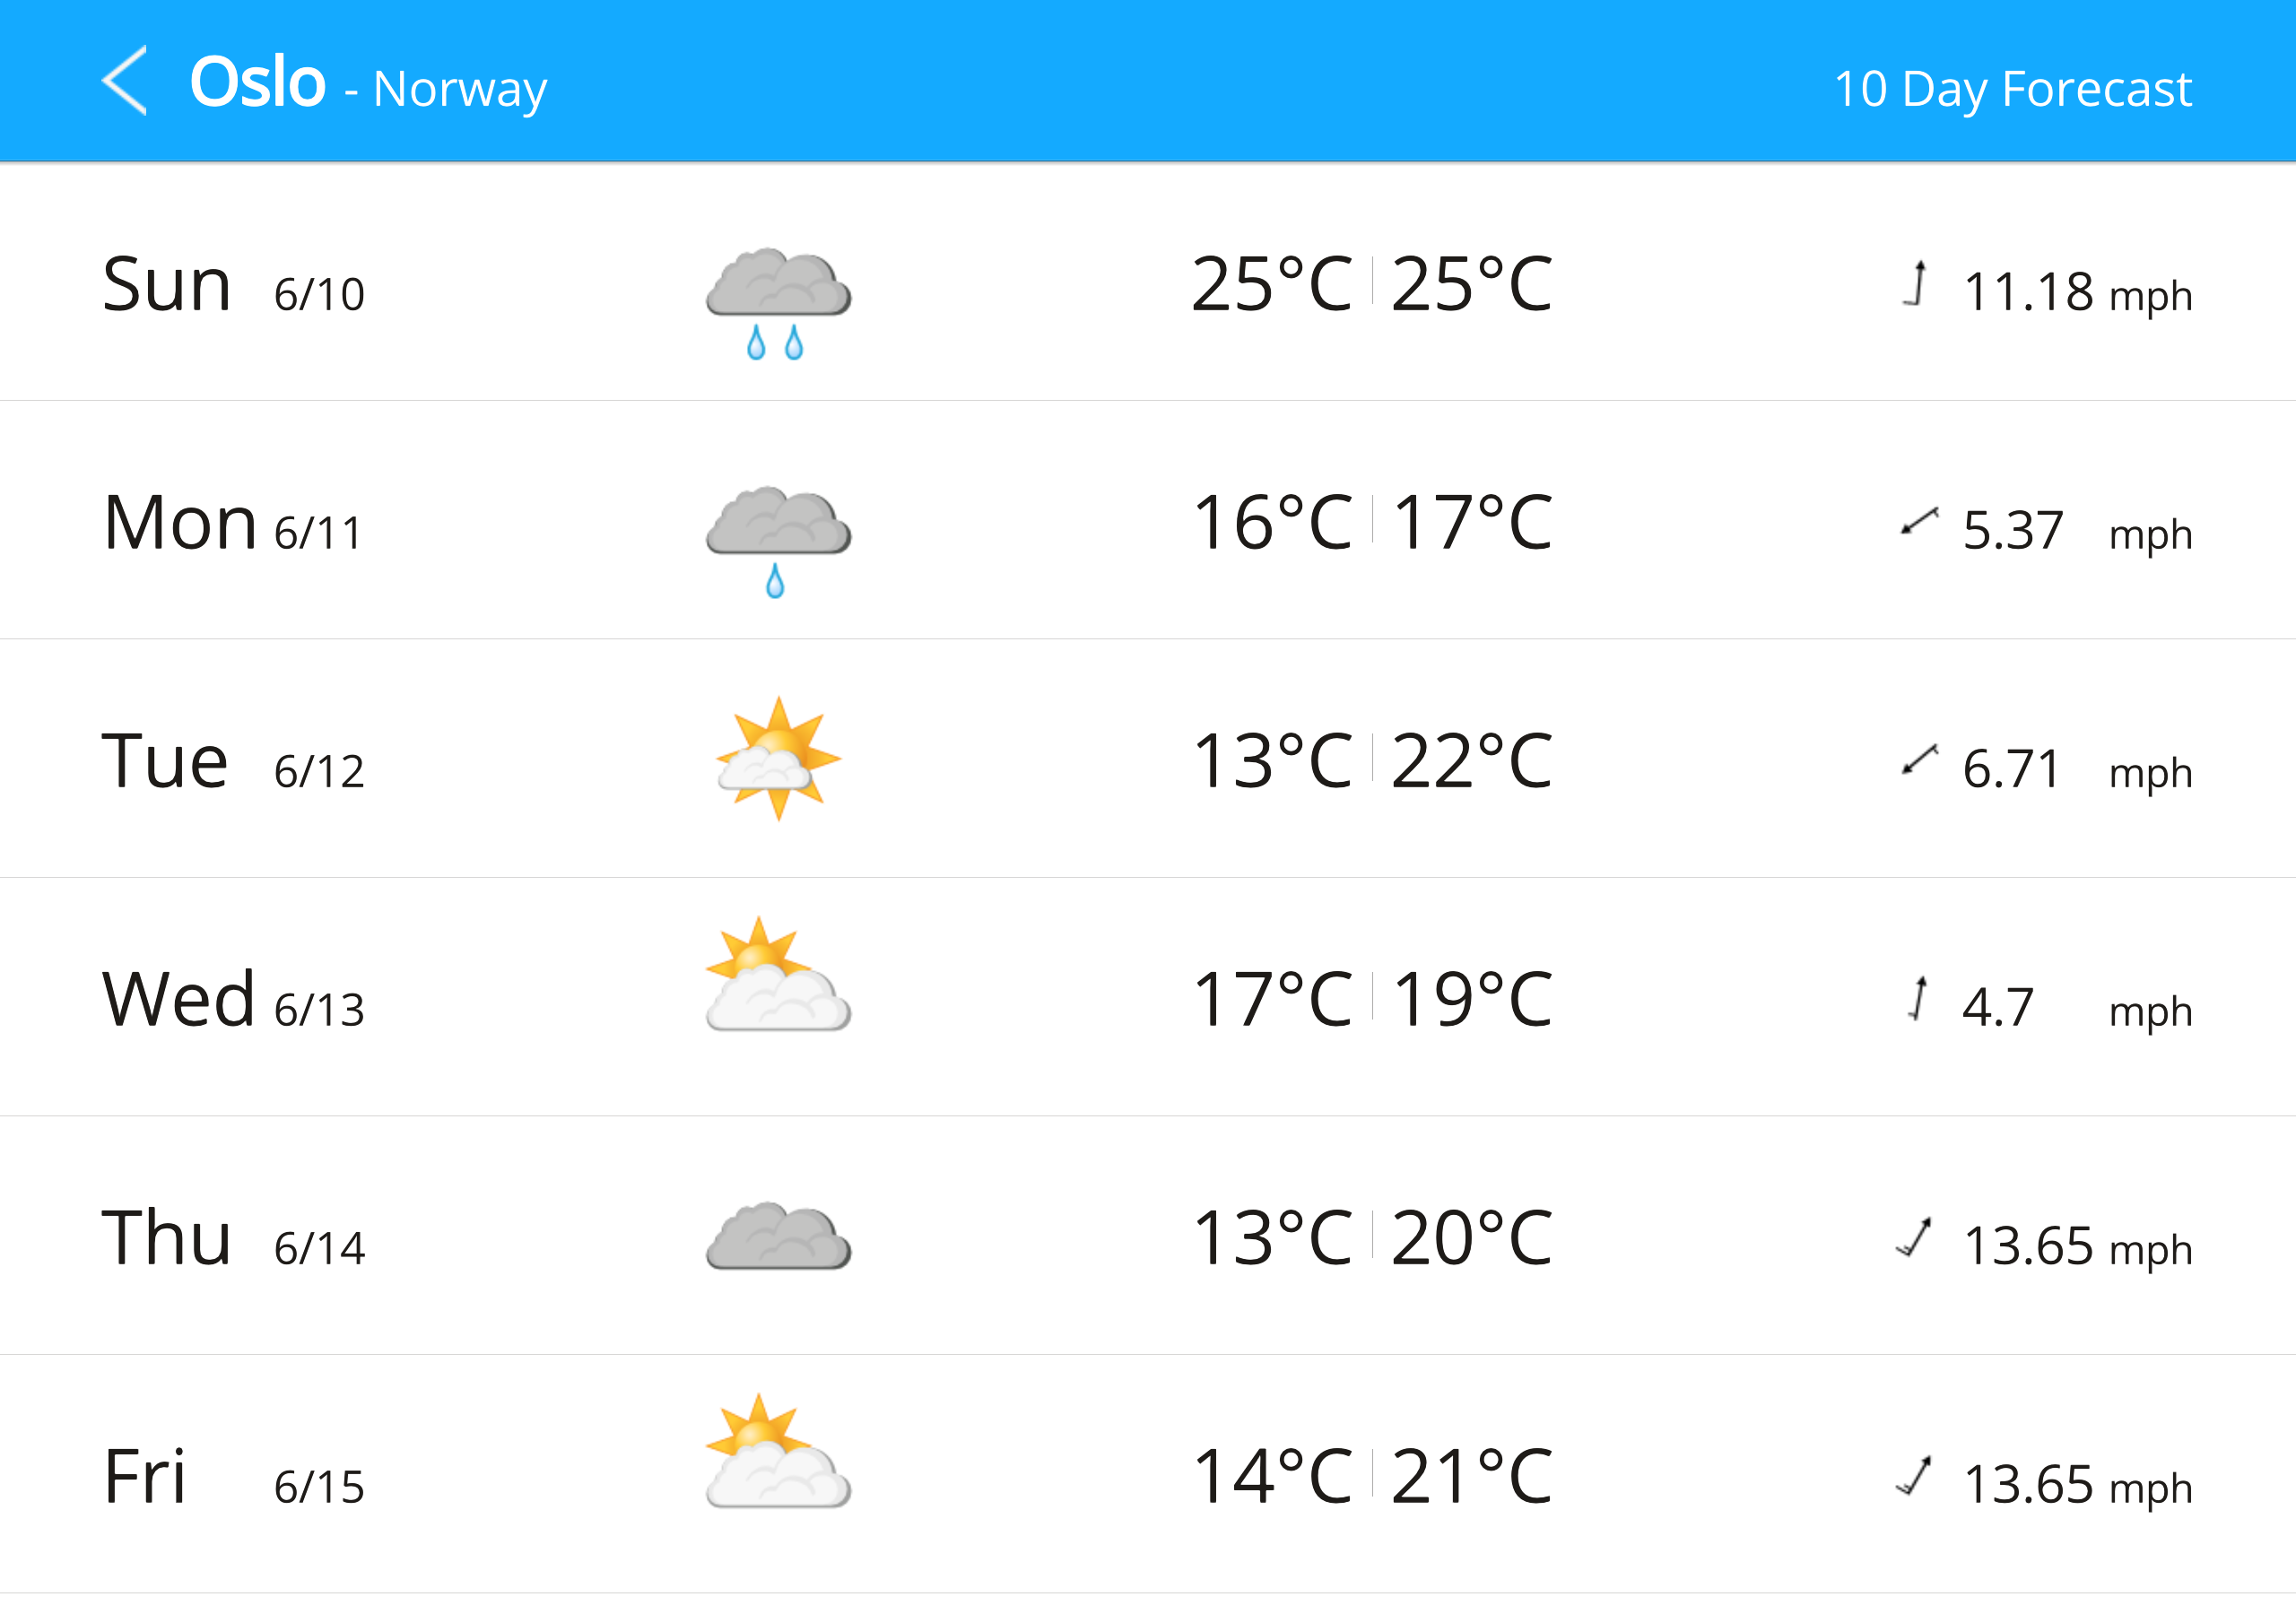 img/quick-forecast.png